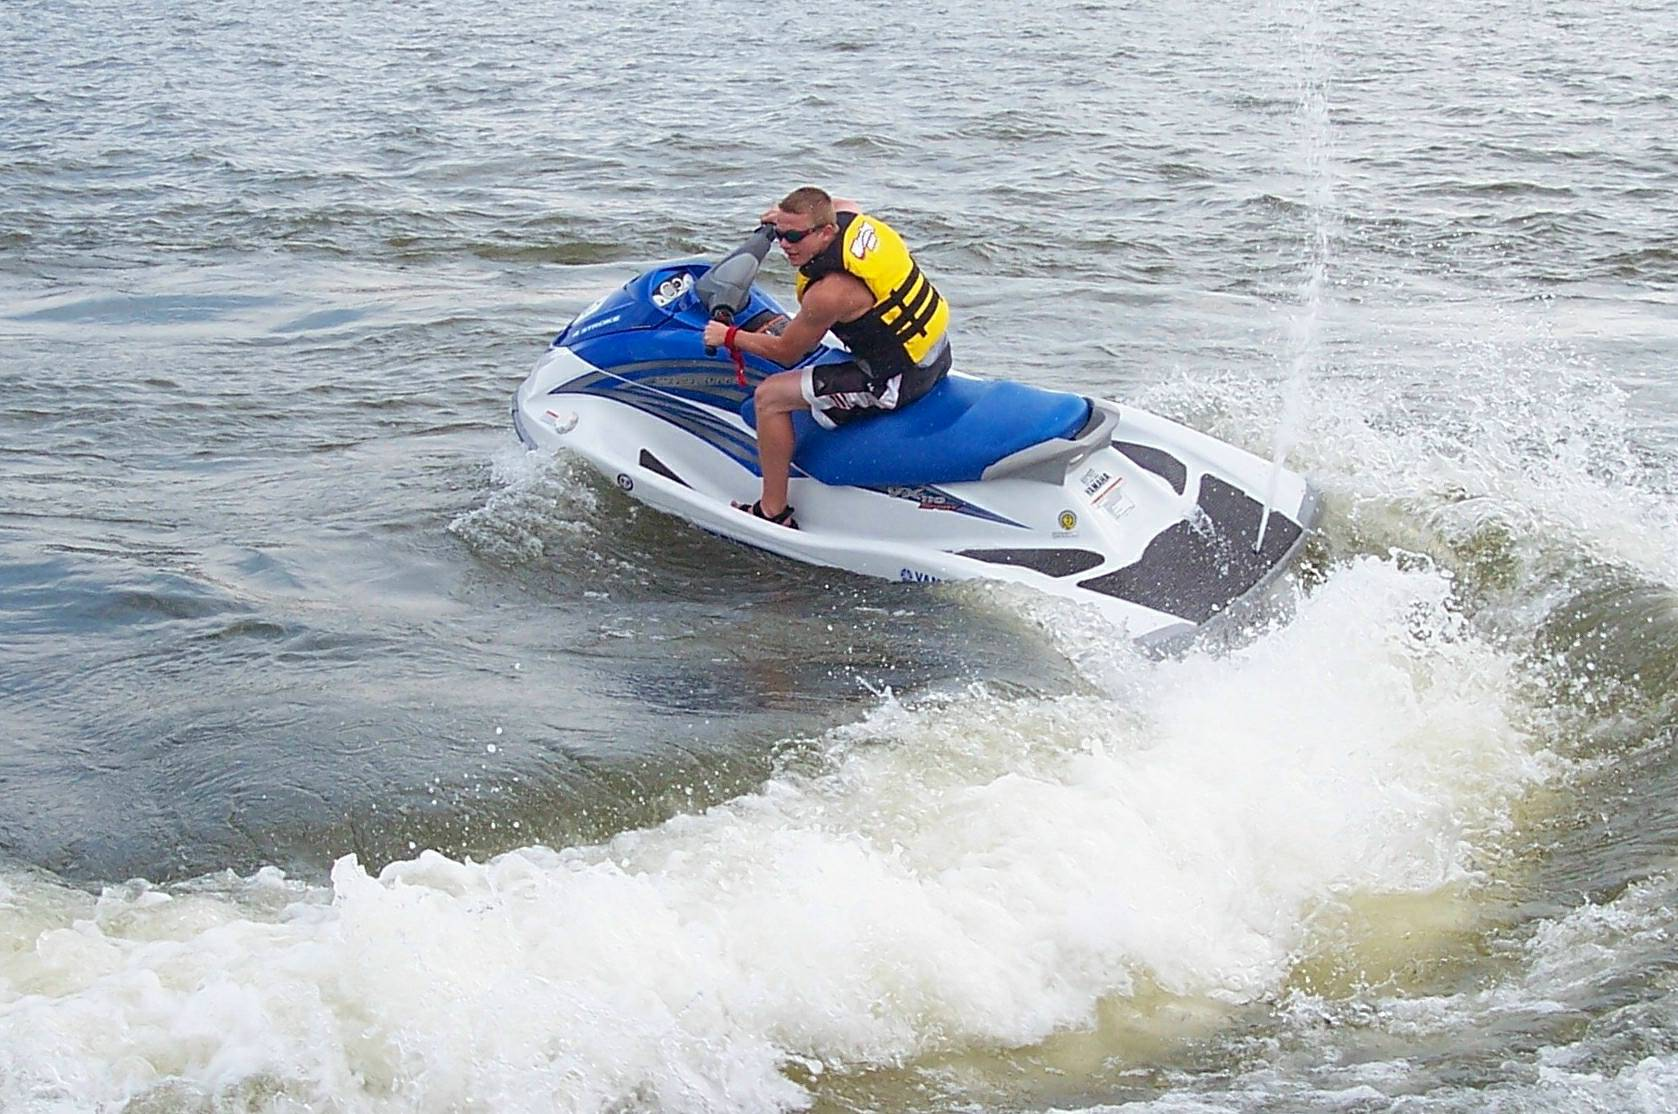 jet ski Wildwood waverunners riding with us is the perfect way to beat the heat,  quench your need for speed, and hang loose with family and friends jet ski.